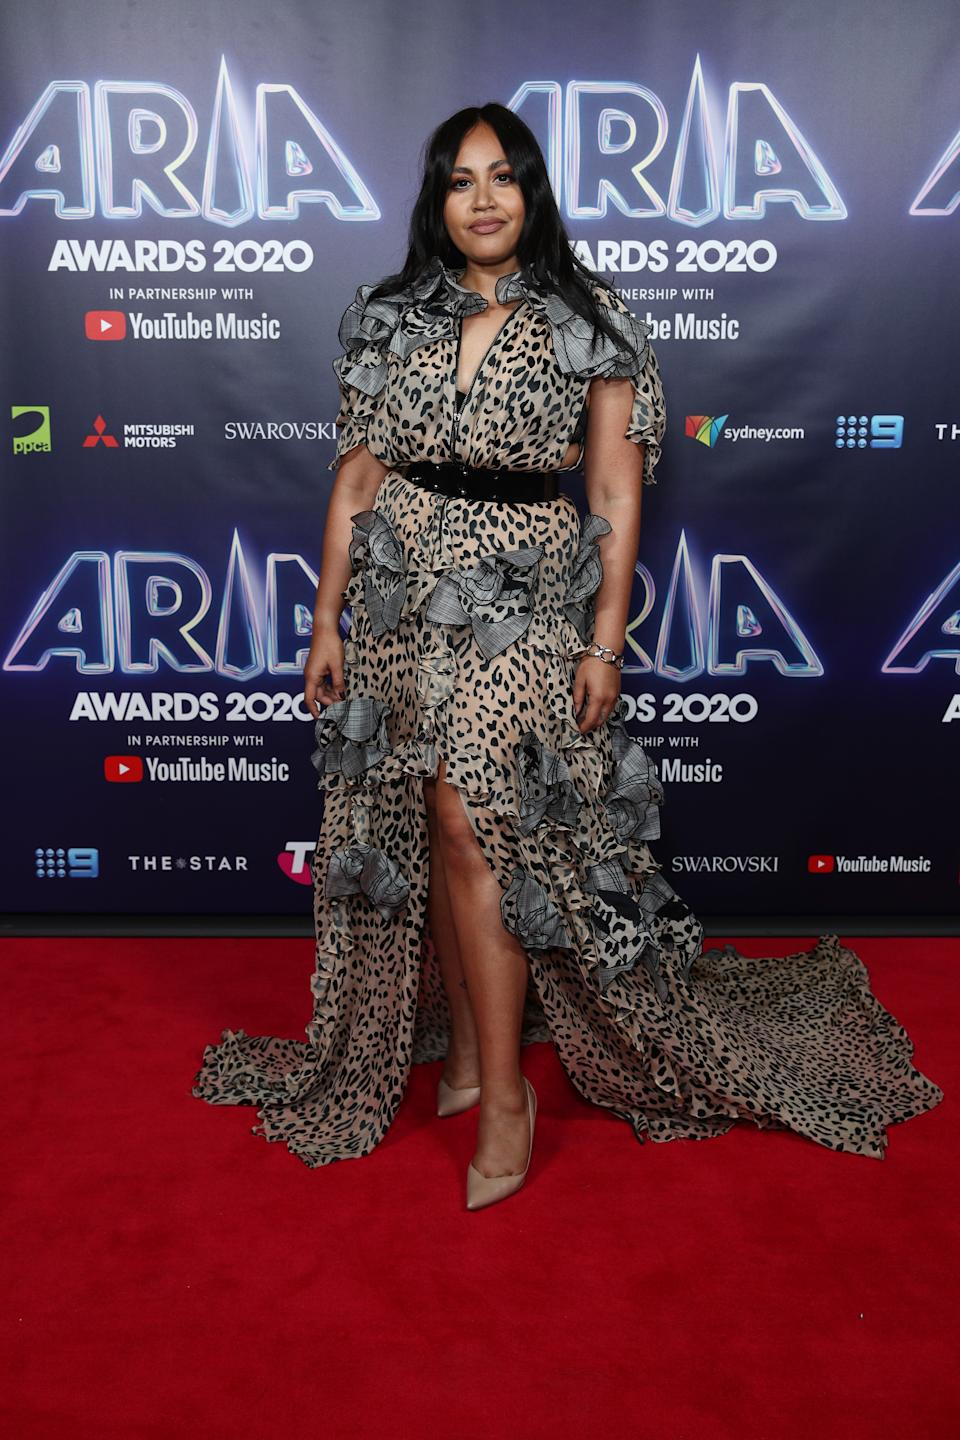 Jessica Mauboy attends the 2020 ARIA Awards at The Star on November 24, 2020 in Sydney, Australia.